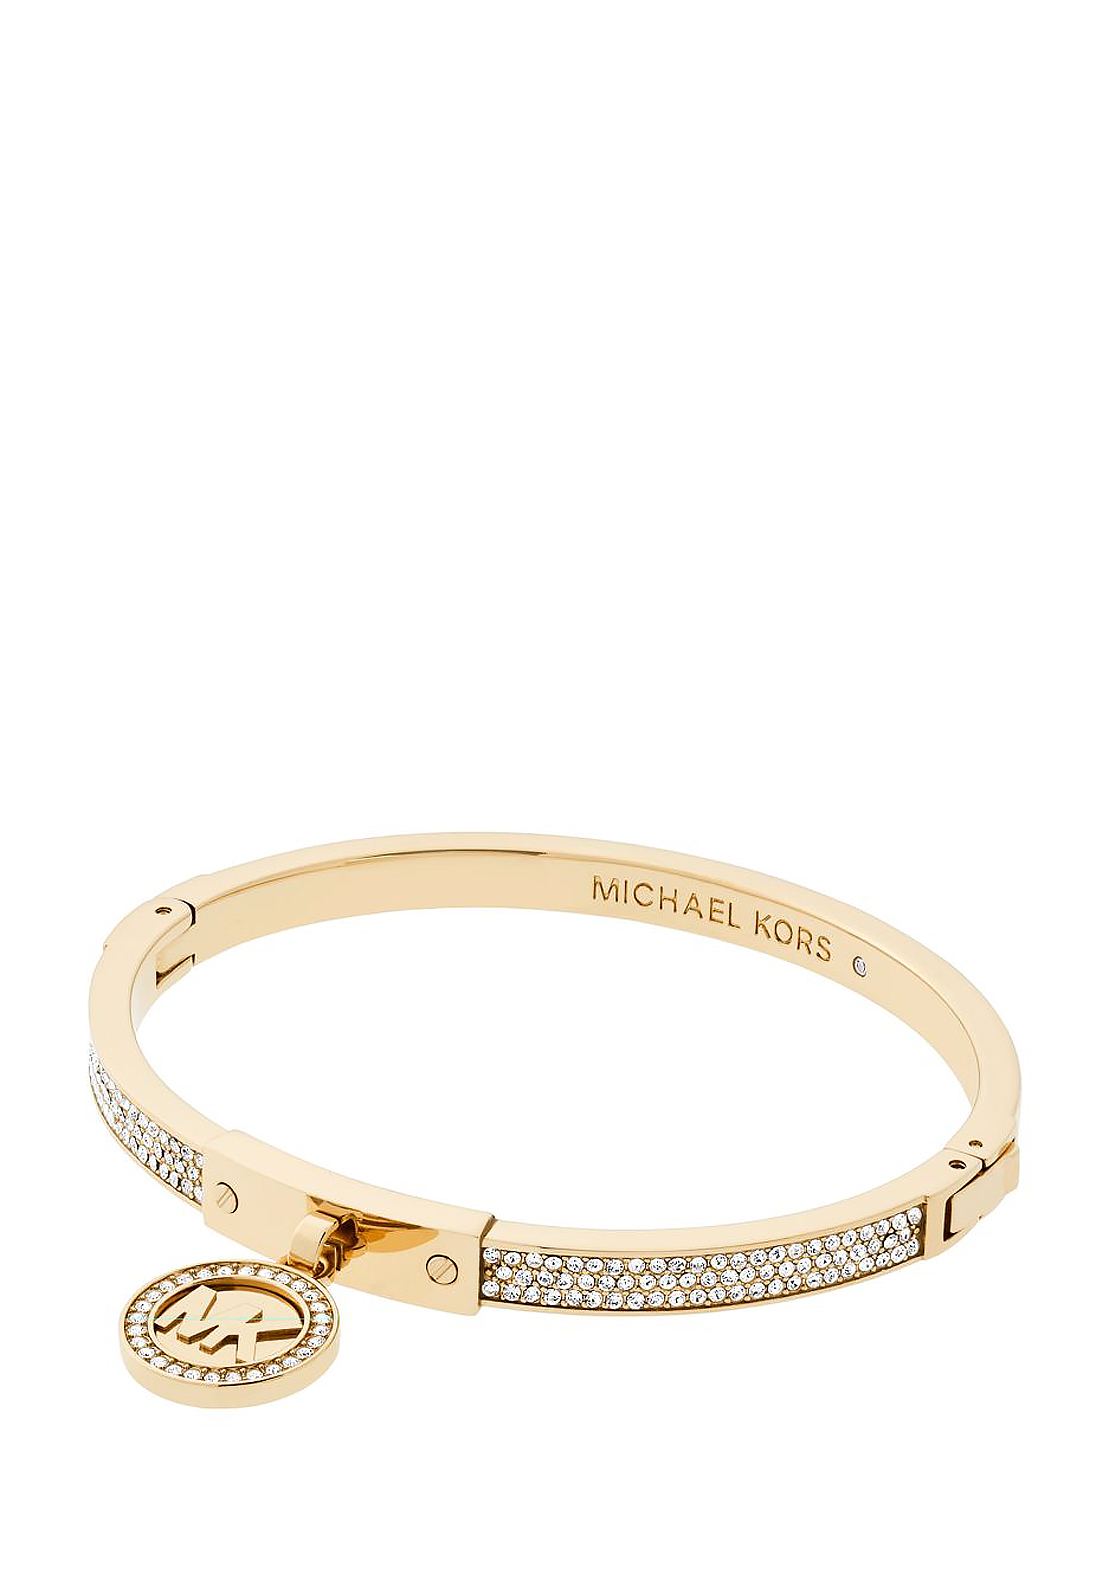 Michael Kors Fulton Pave Stone Charm Hinge Bangle, Gold